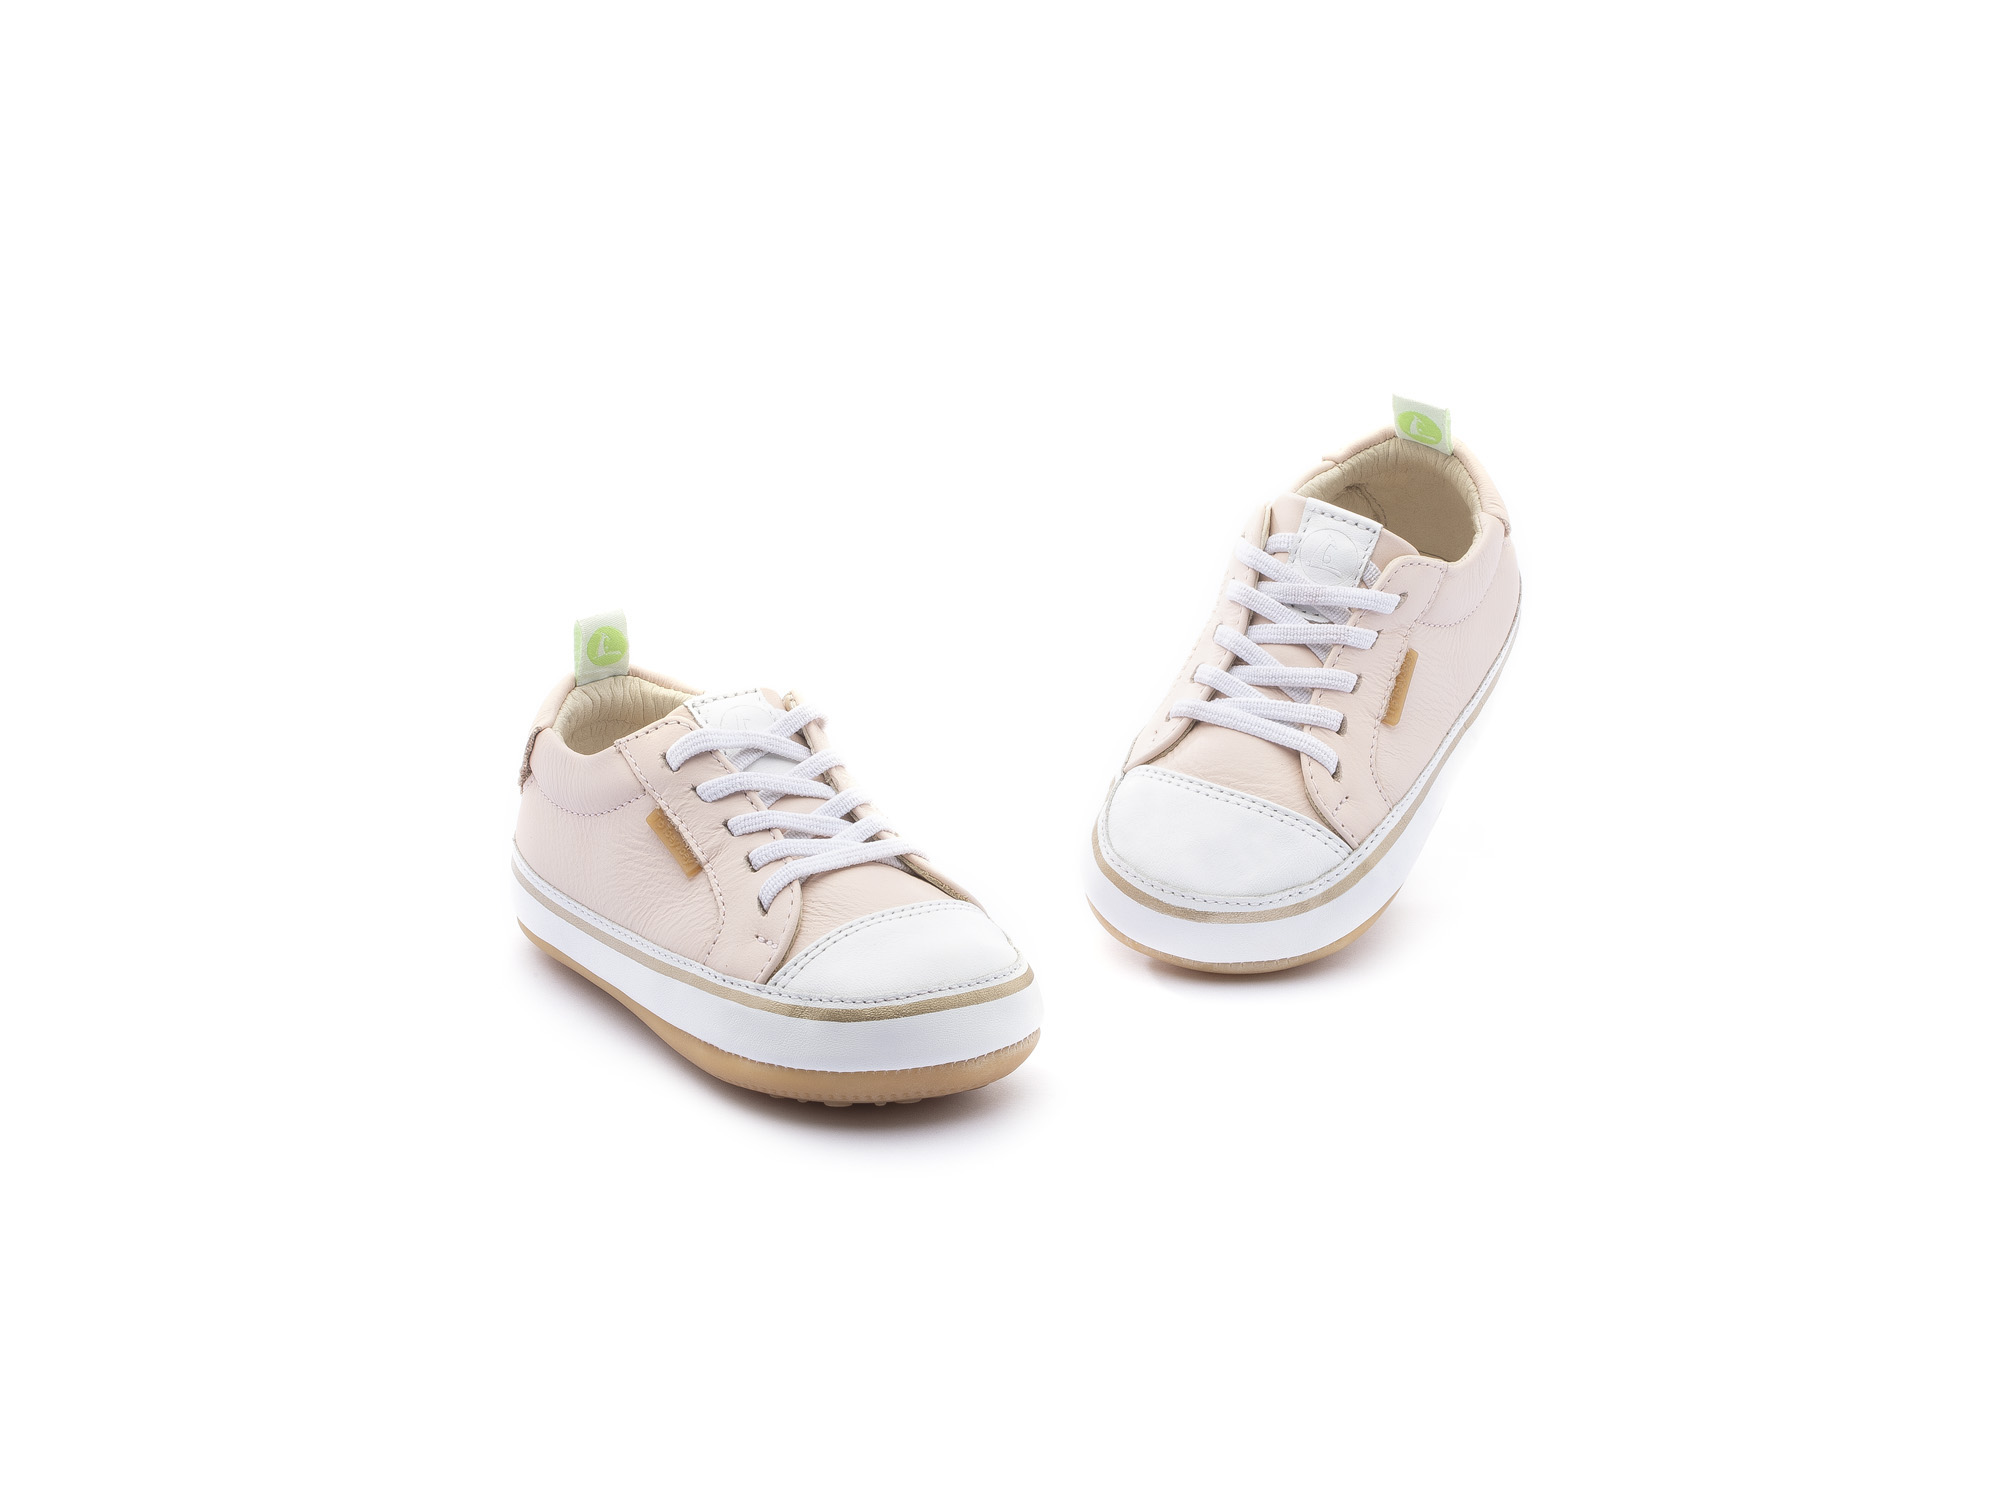 Sneaker Casual Funky Cotton Candy/ White  Baby 0 à 2 anos - 3